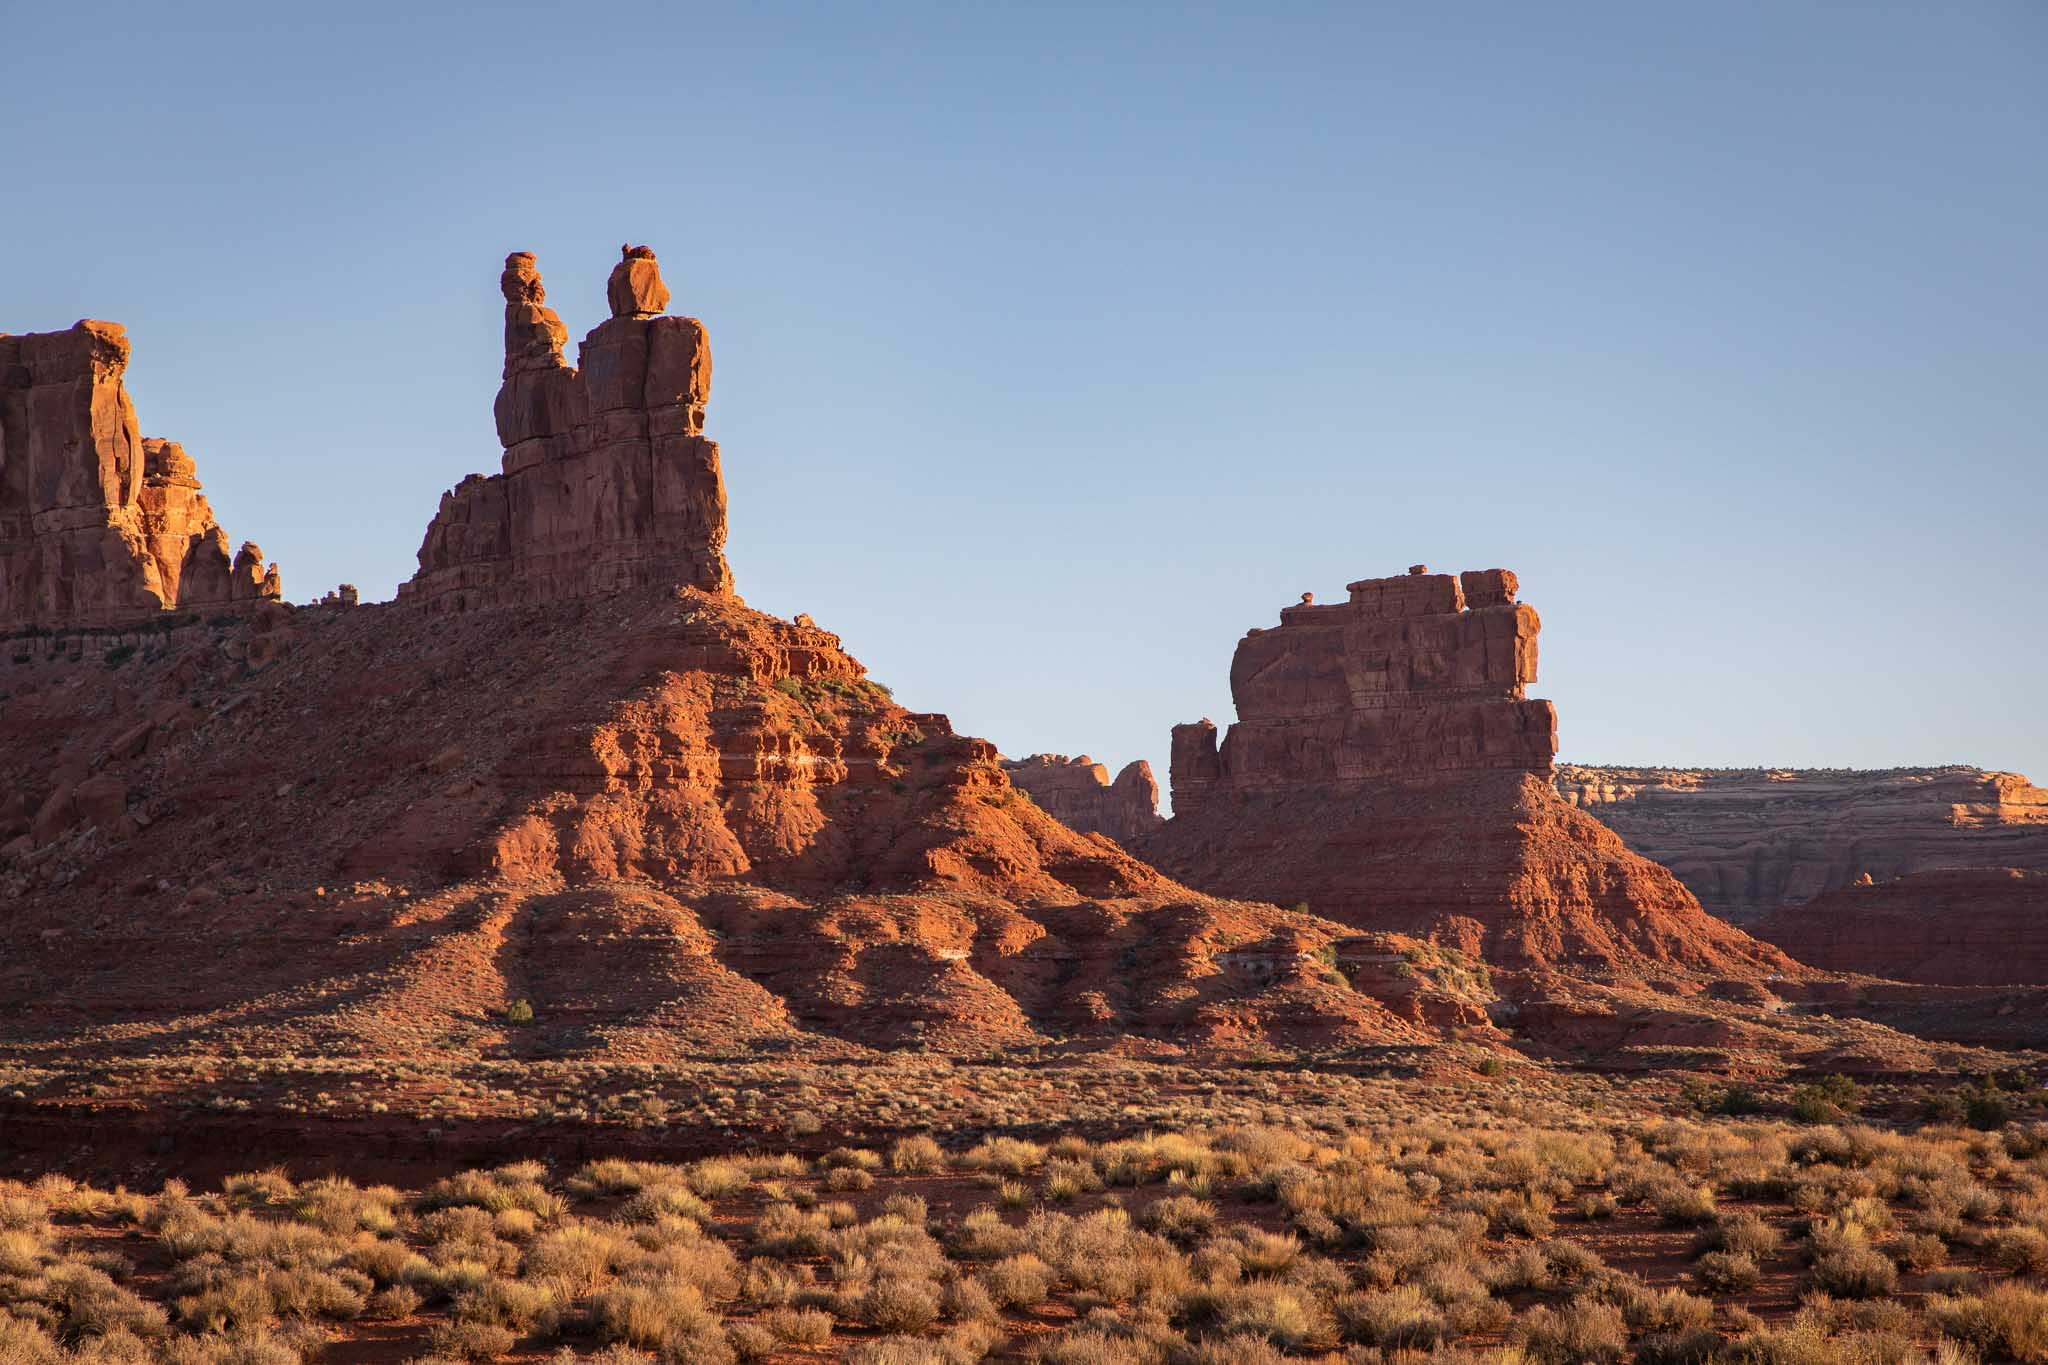 Landscape with Rudolph and Santa Claus rock formation, Valley of the Gods, Mexican Hat UT, May 17, 2018